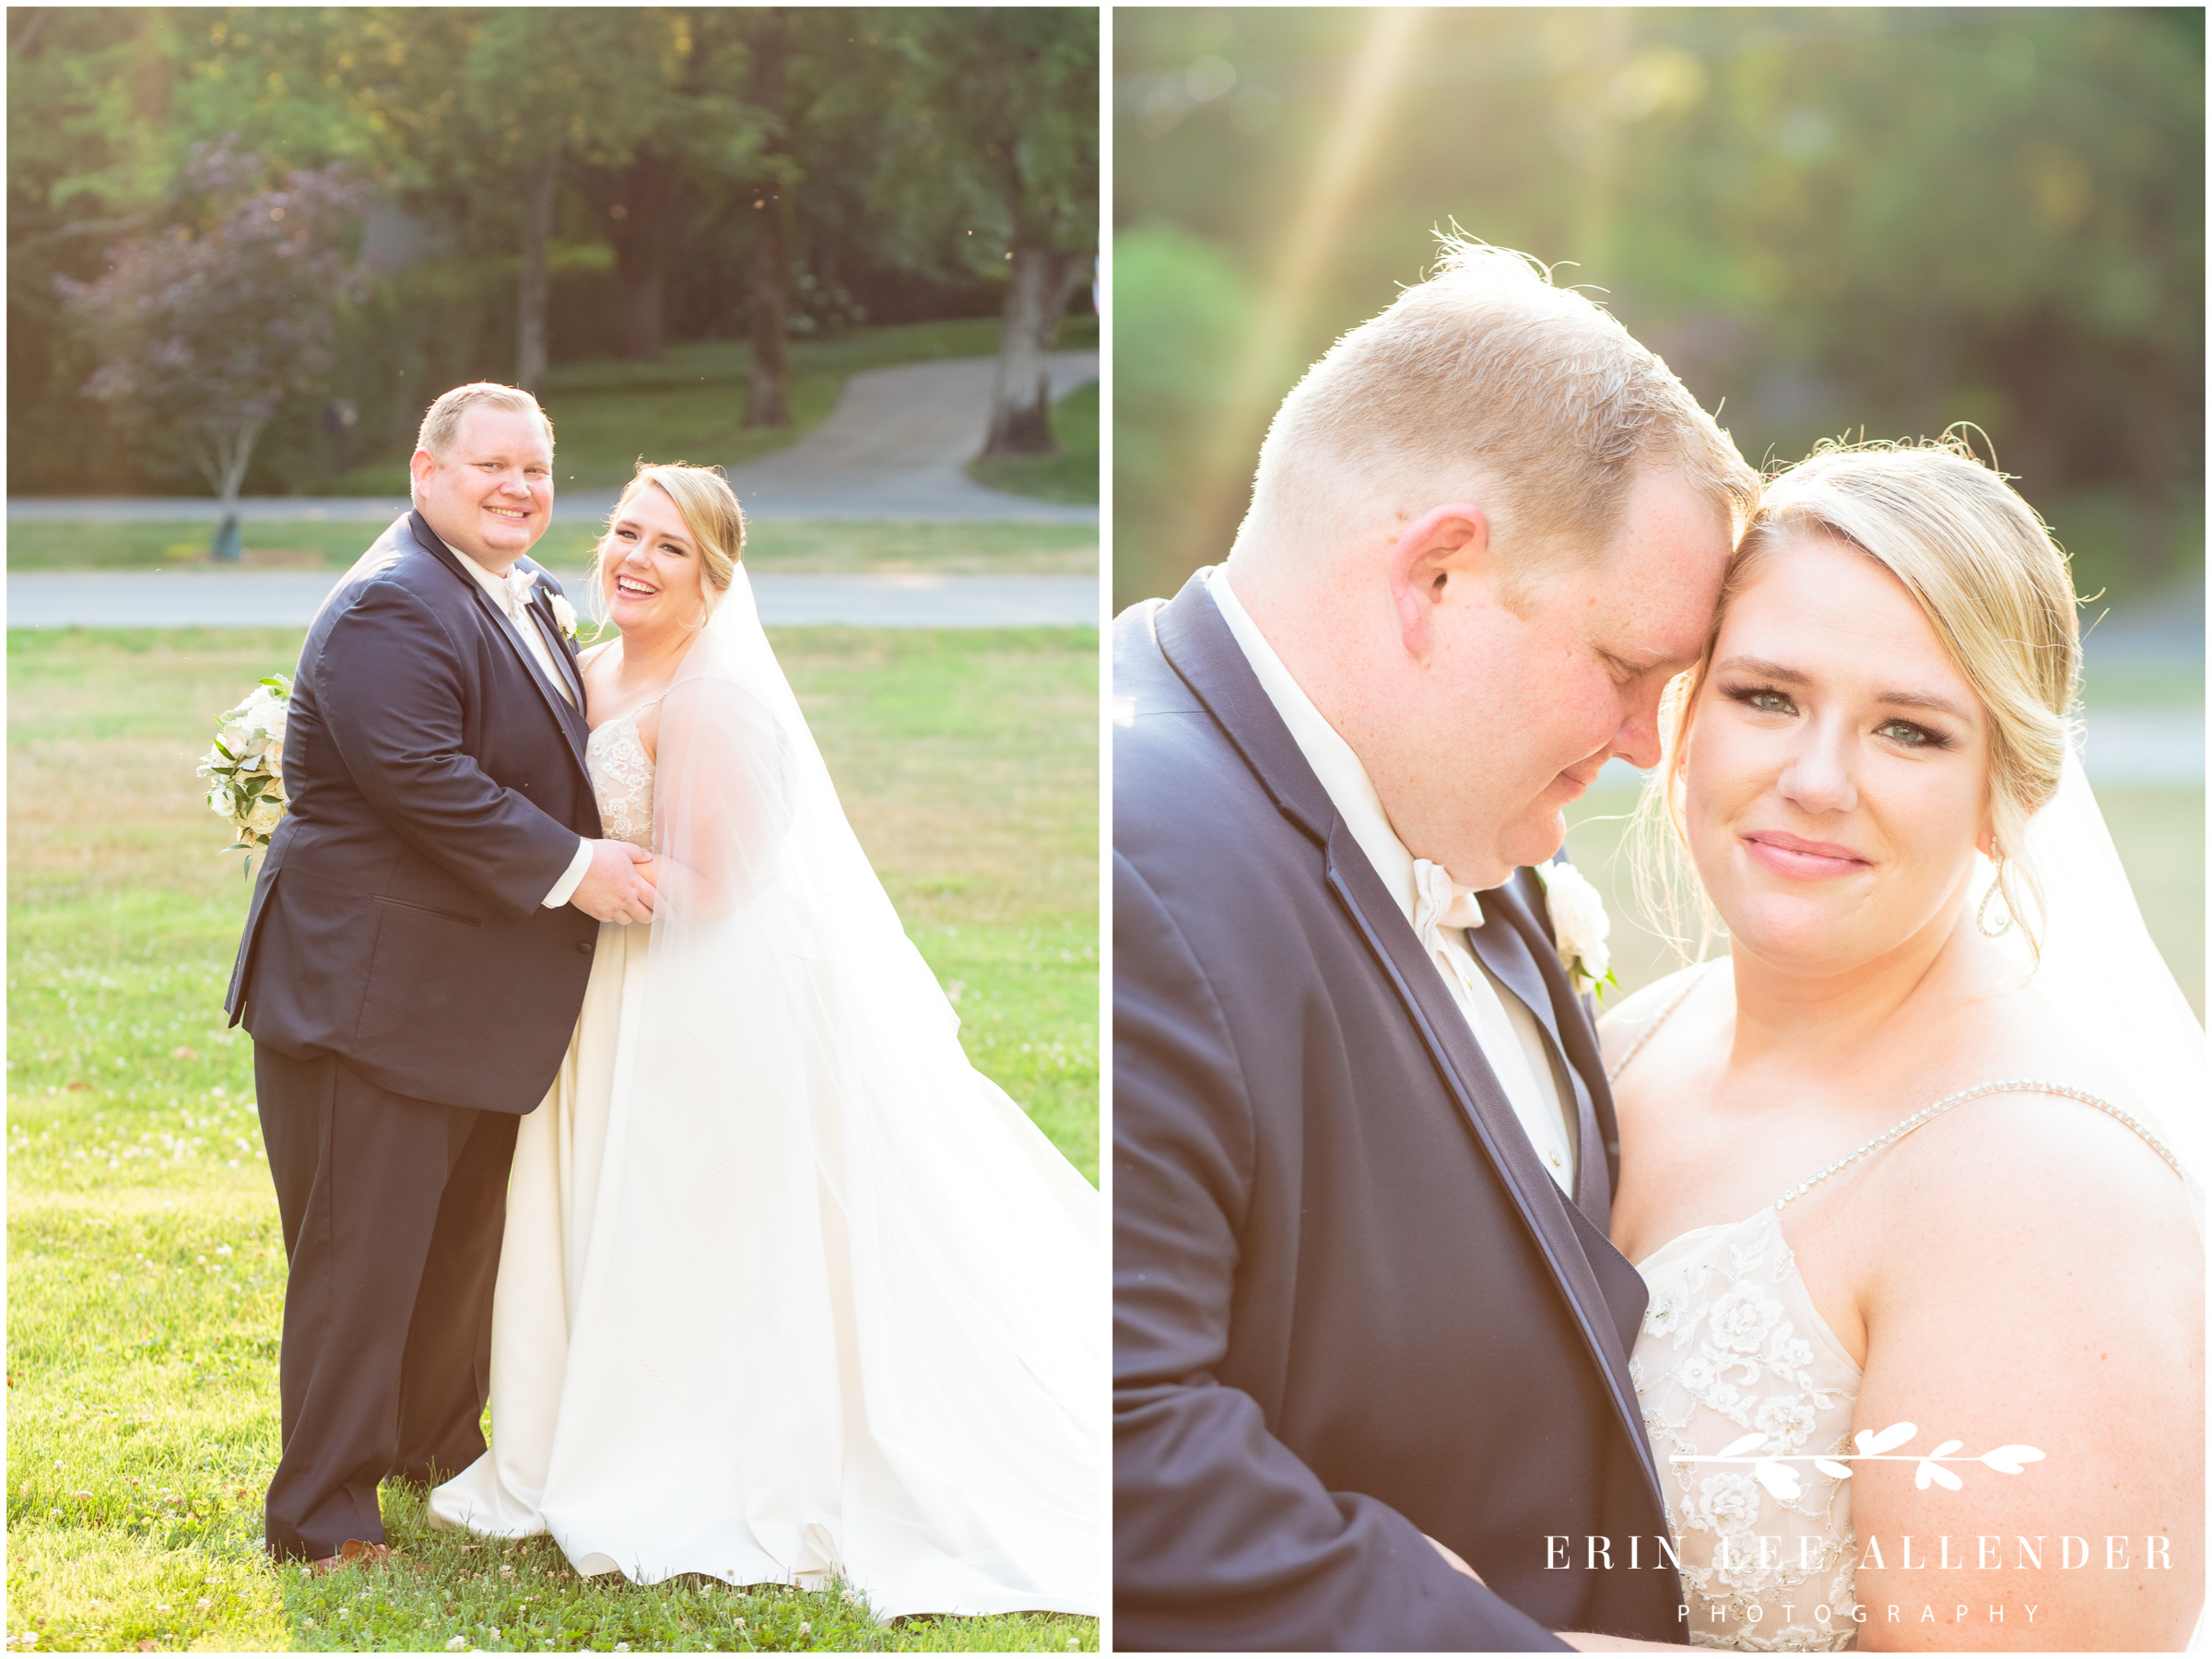 nashville-wedding-photograph-erin-lee-allender